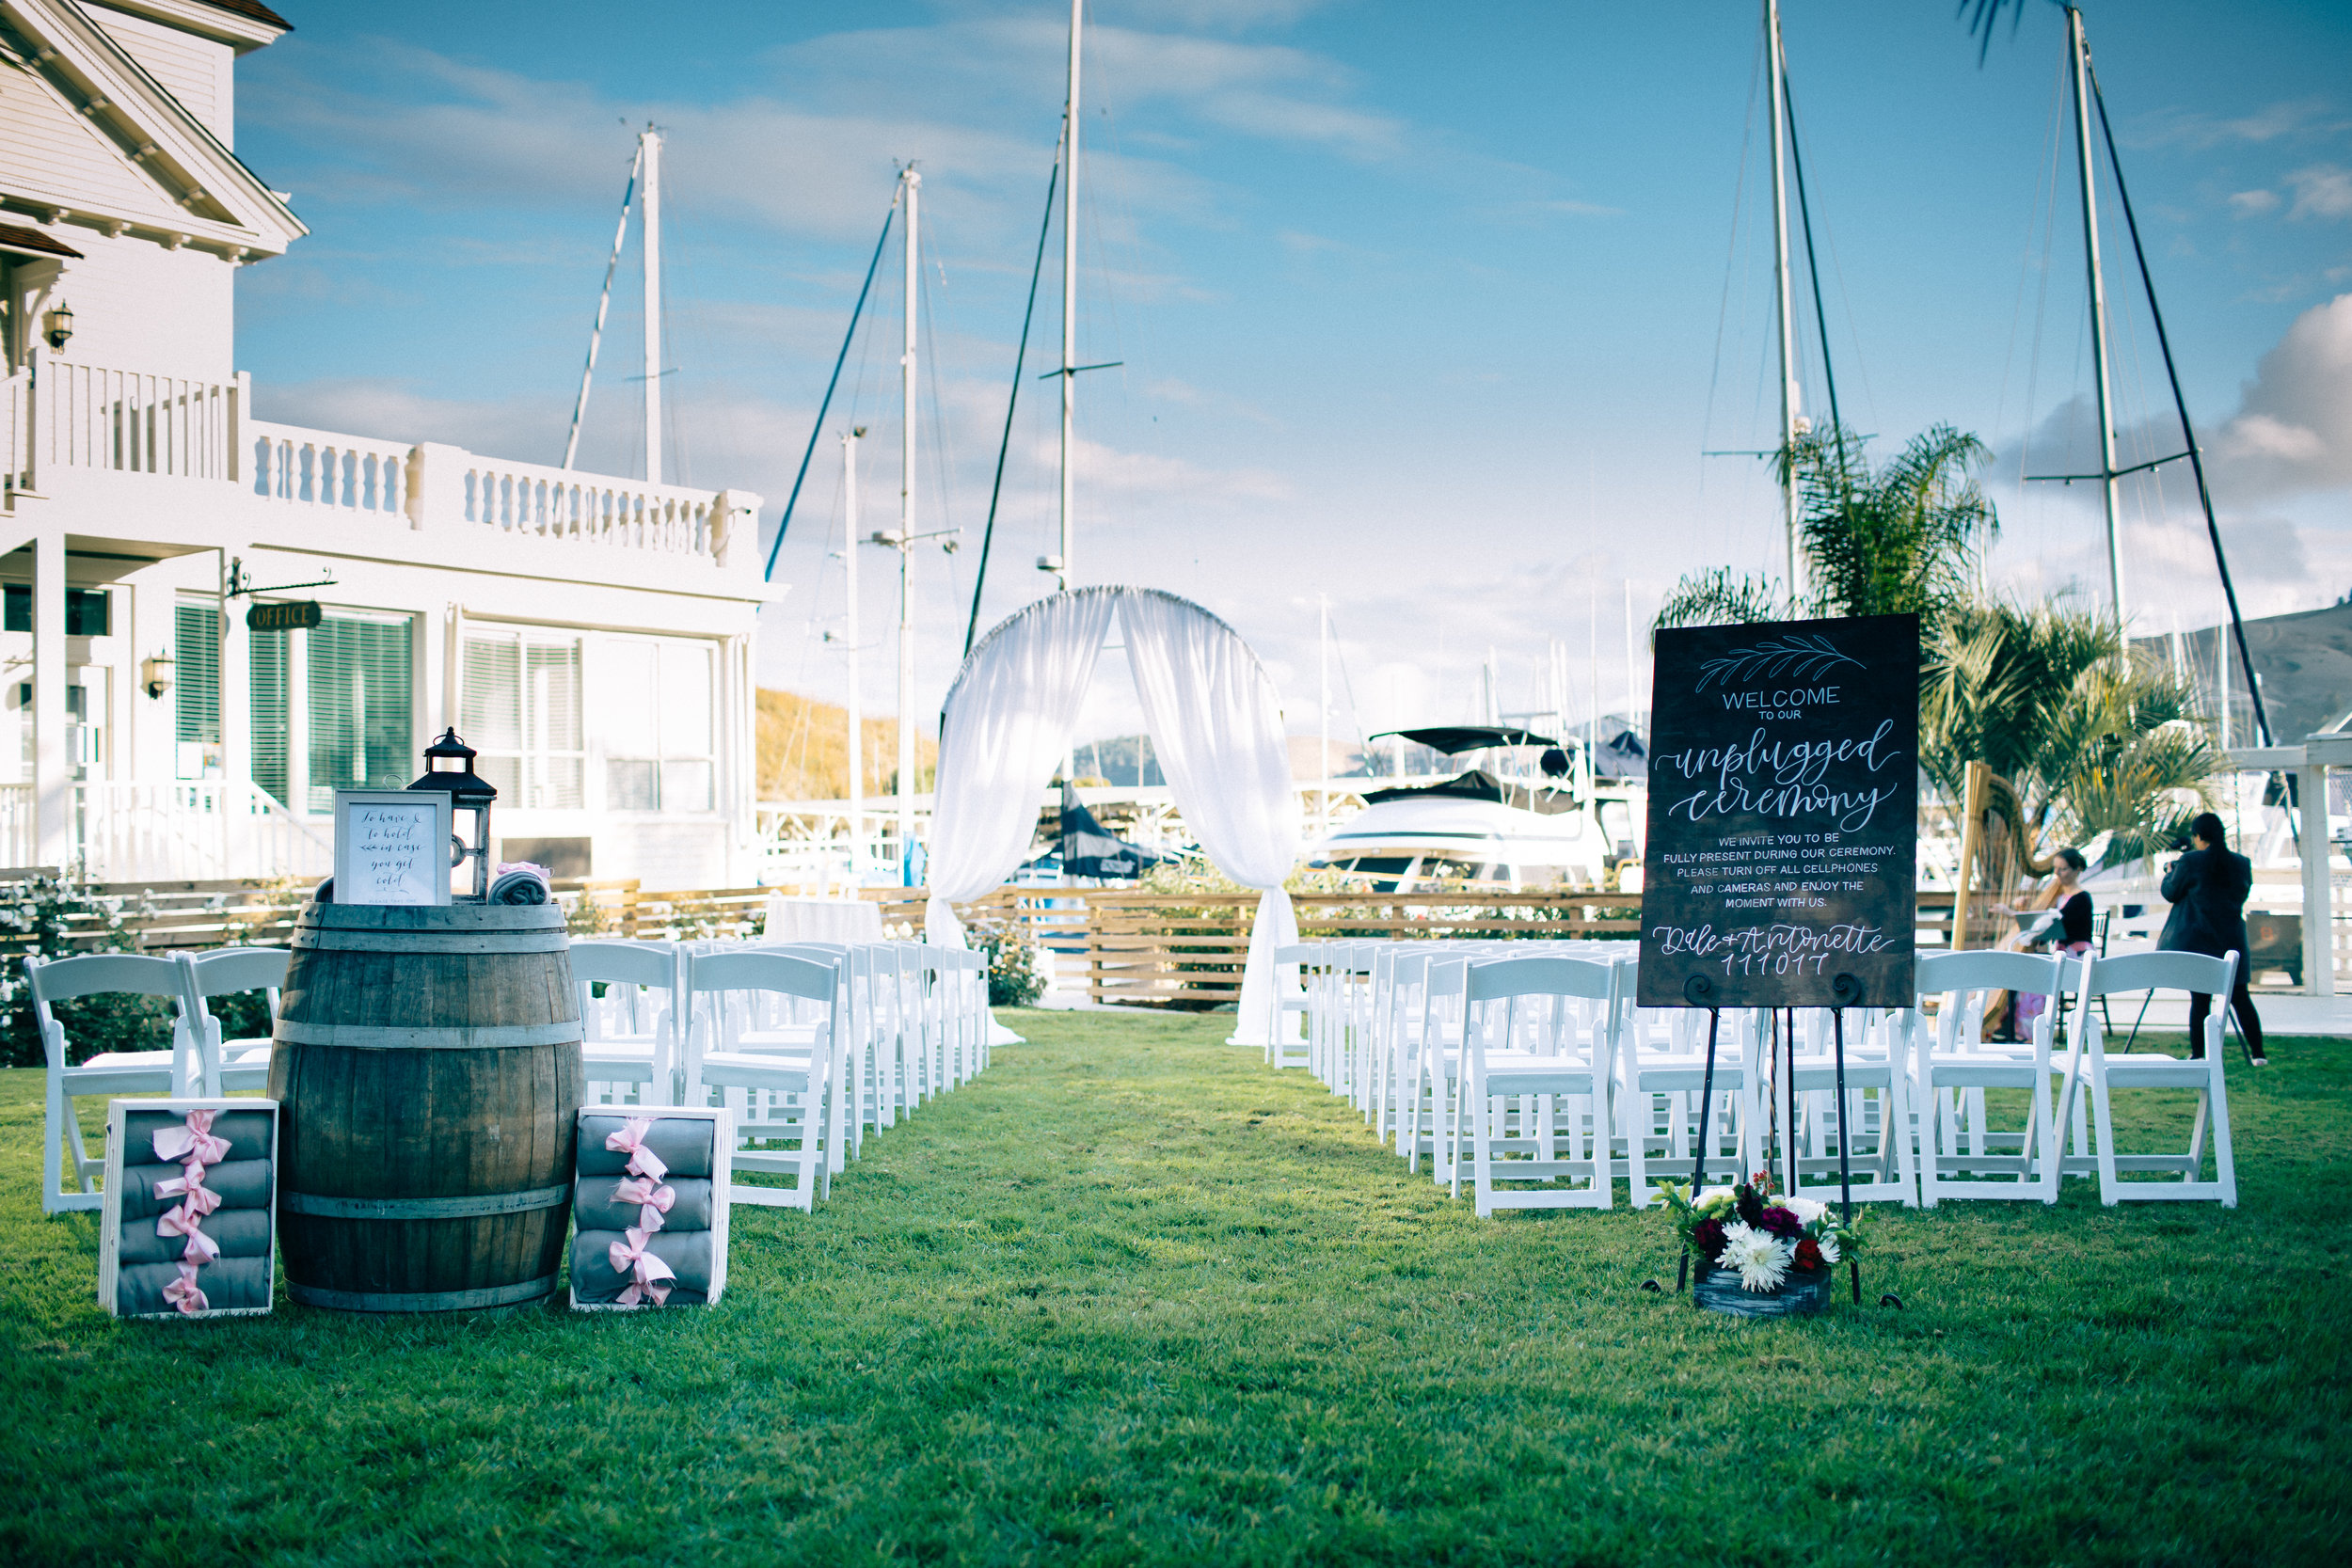 waterfront-wedding-venue-in-bay-area224.jpg